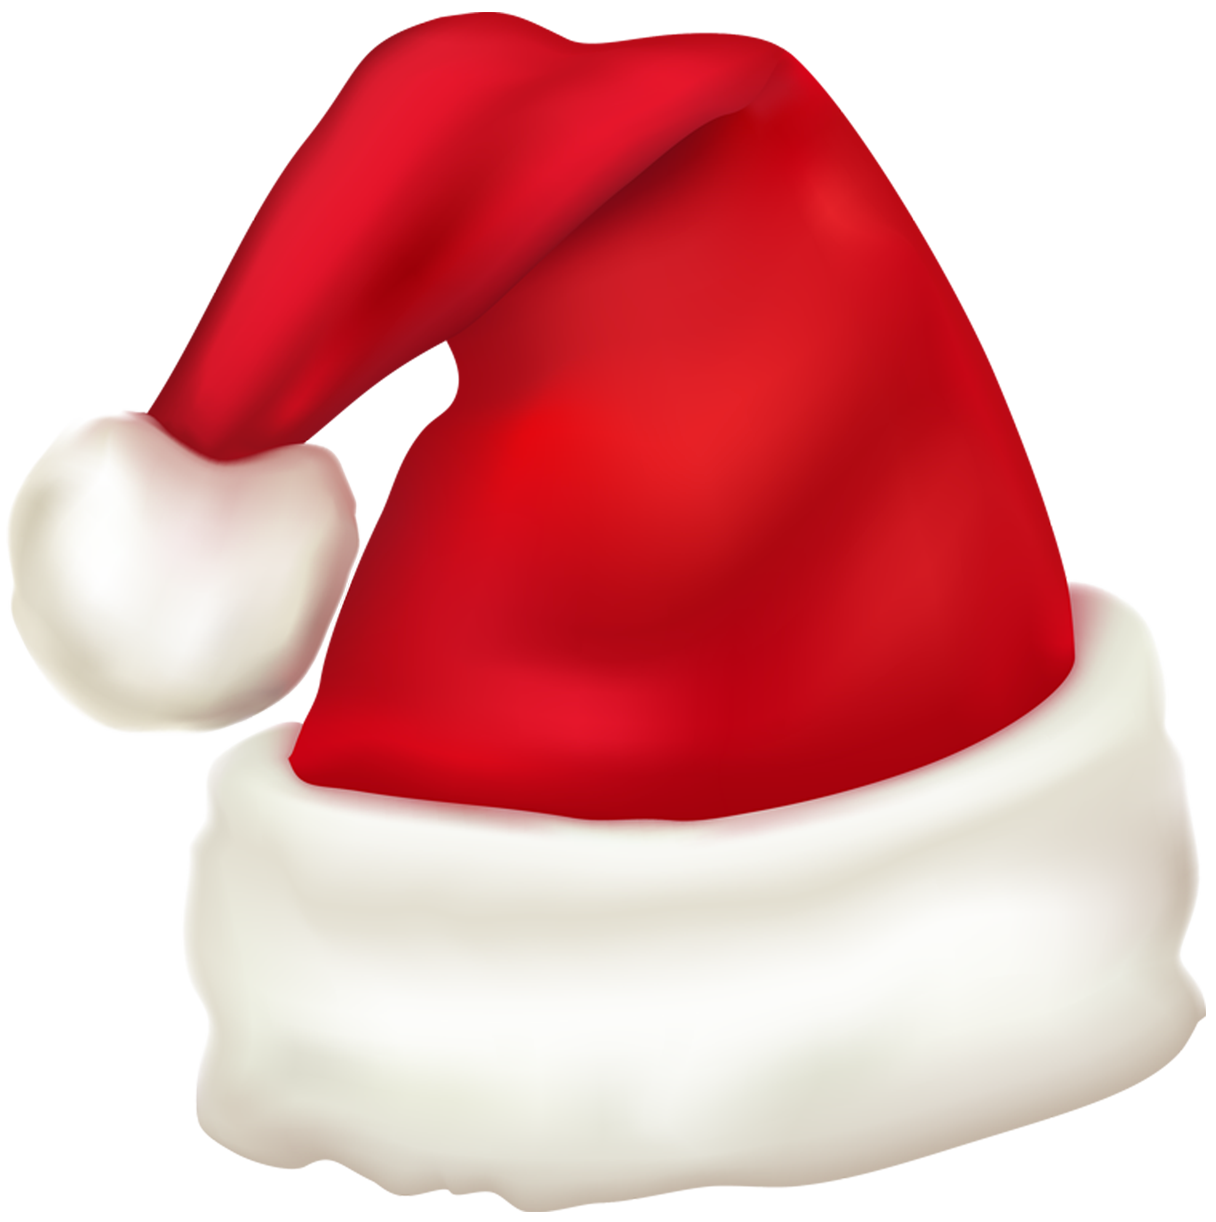 Santa hat clipart transparent background jpg Santa Hat Png Transparent Background Christmas jpg